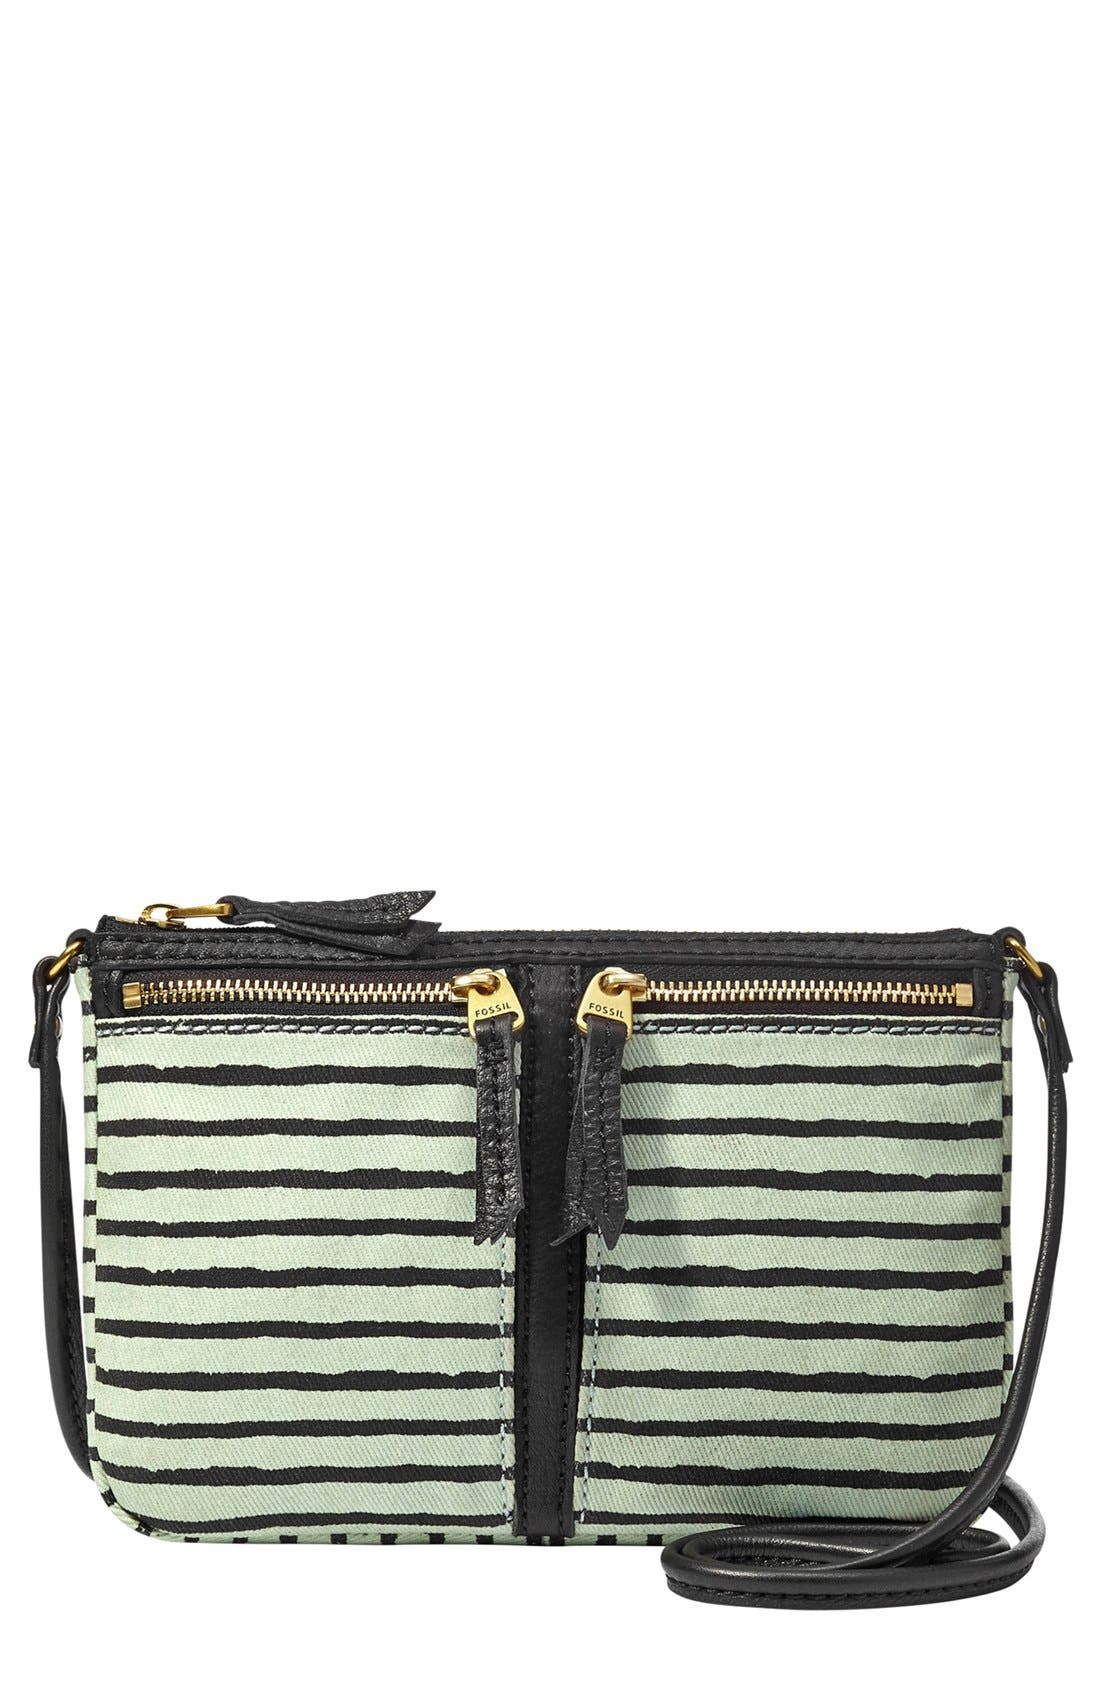 Alternate Image 1 Selected - Fossil 'Small Erin' Crossbody